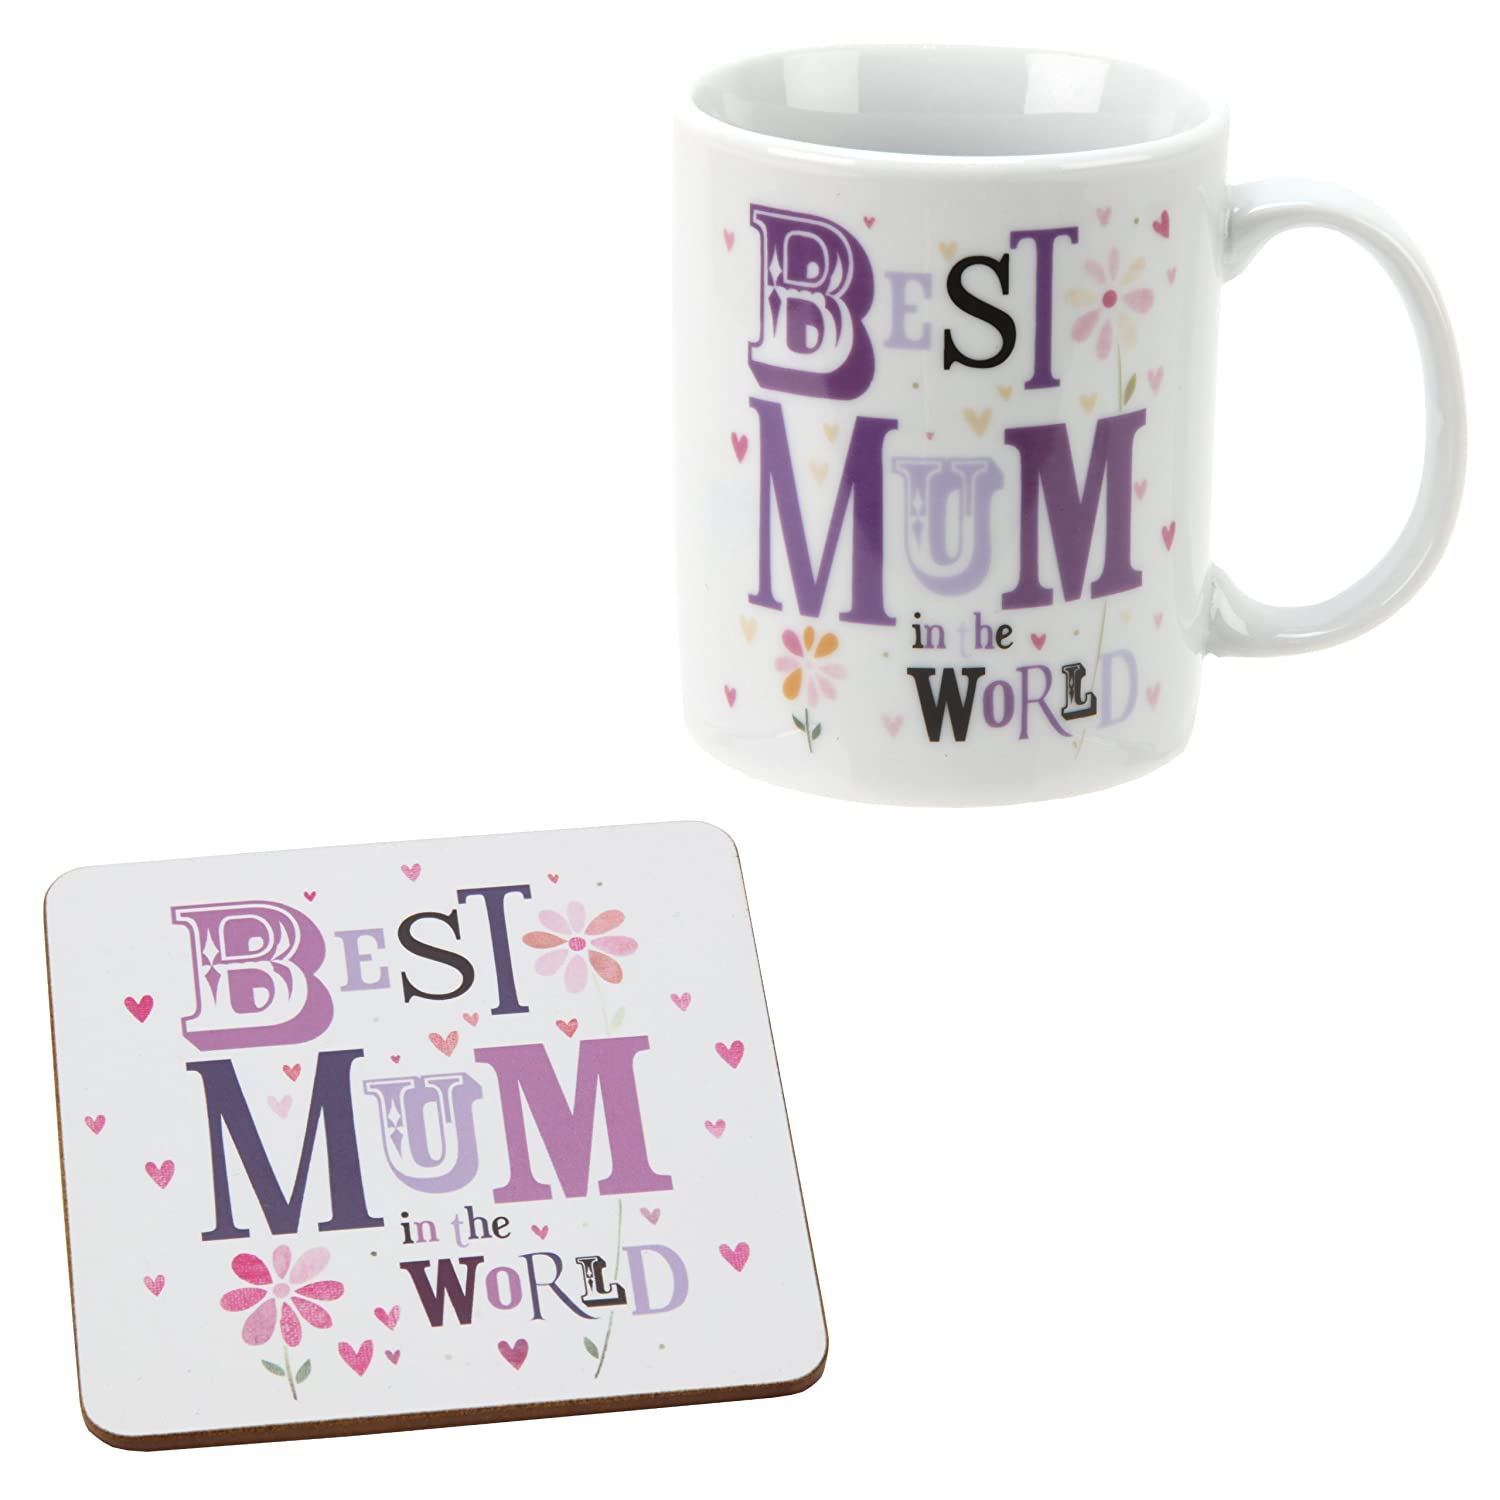 Best Mum in the World Mug & Coaster Set LBS4ALL